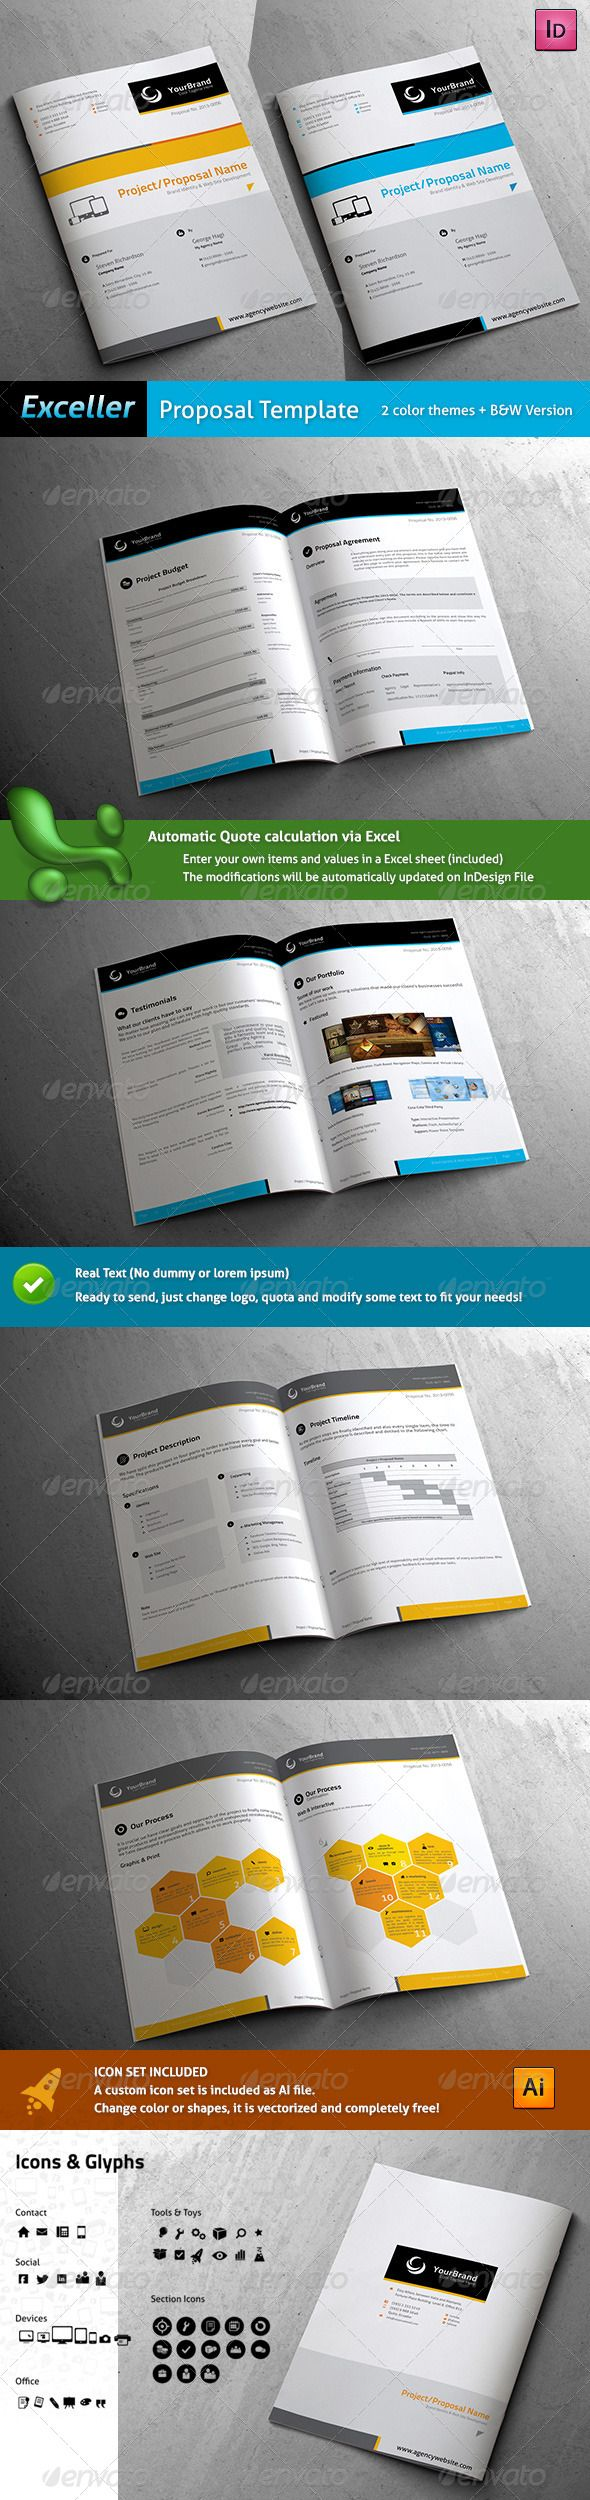 Exceller Proposal Template 298 best Proposal images